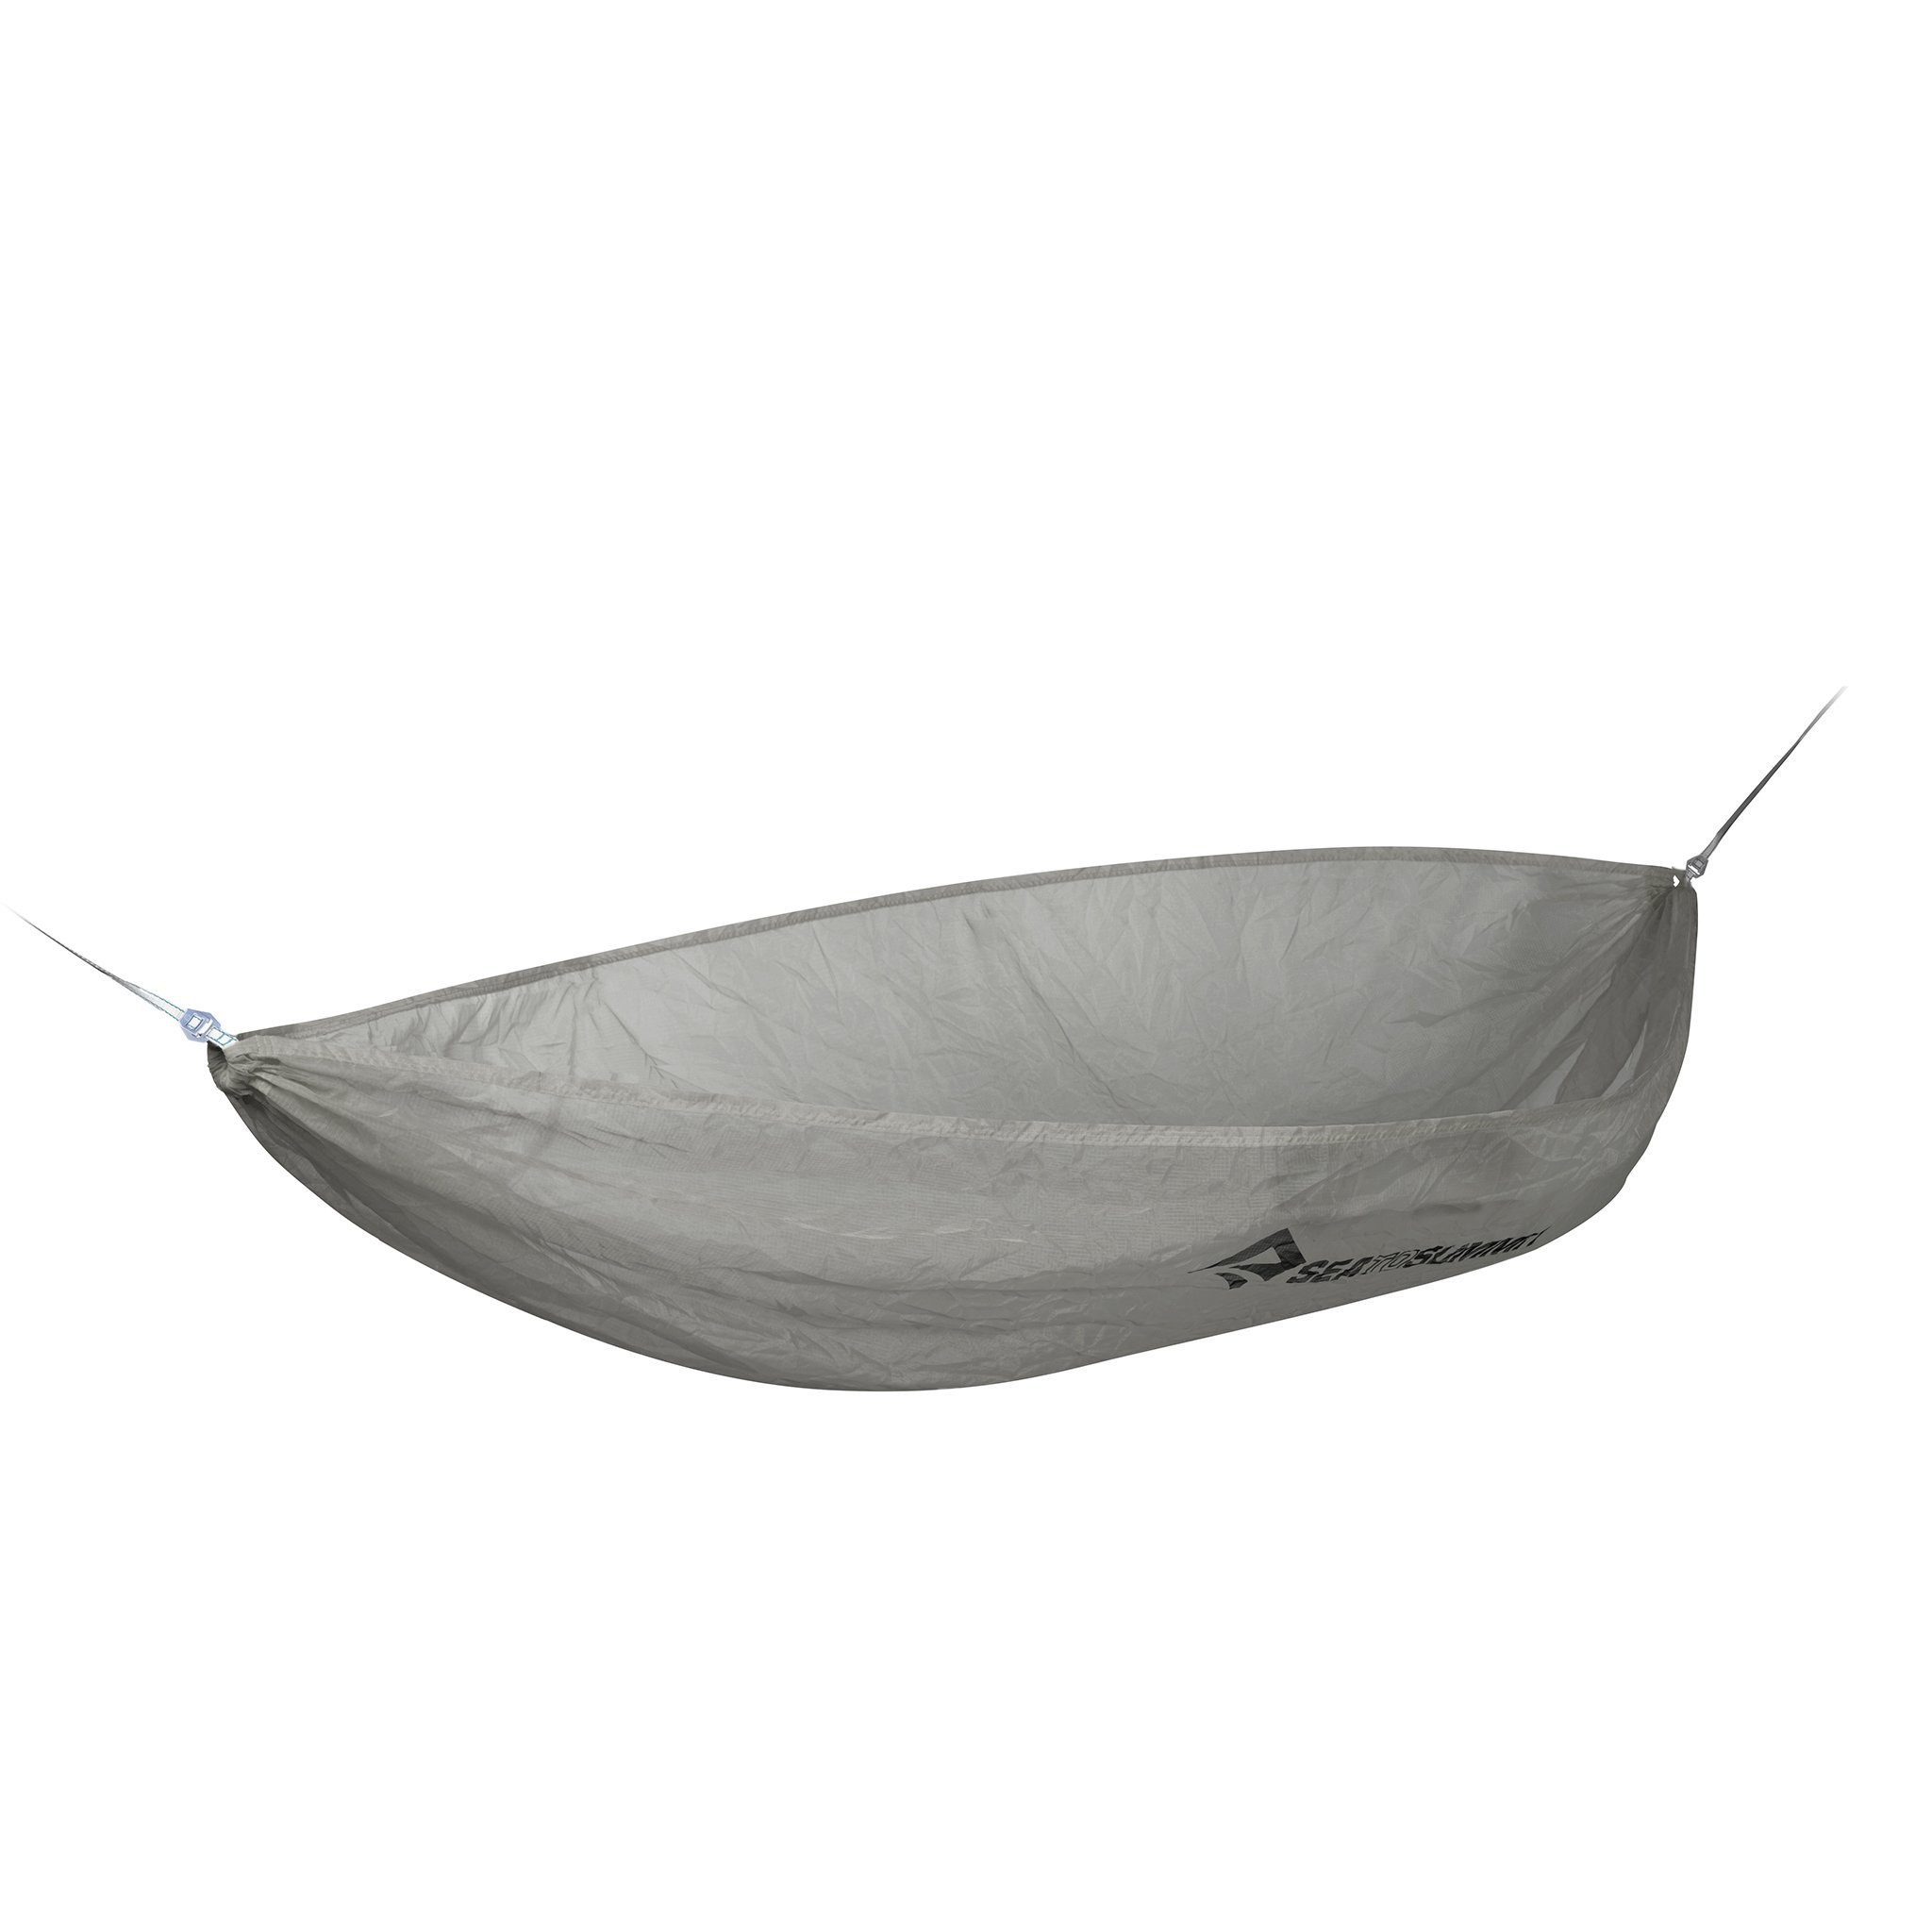 Гамак Sea To Summit - Hammock Ultralight Single XL Grey, 3 м х 1.5 м (STS AHAMULXLSGY)